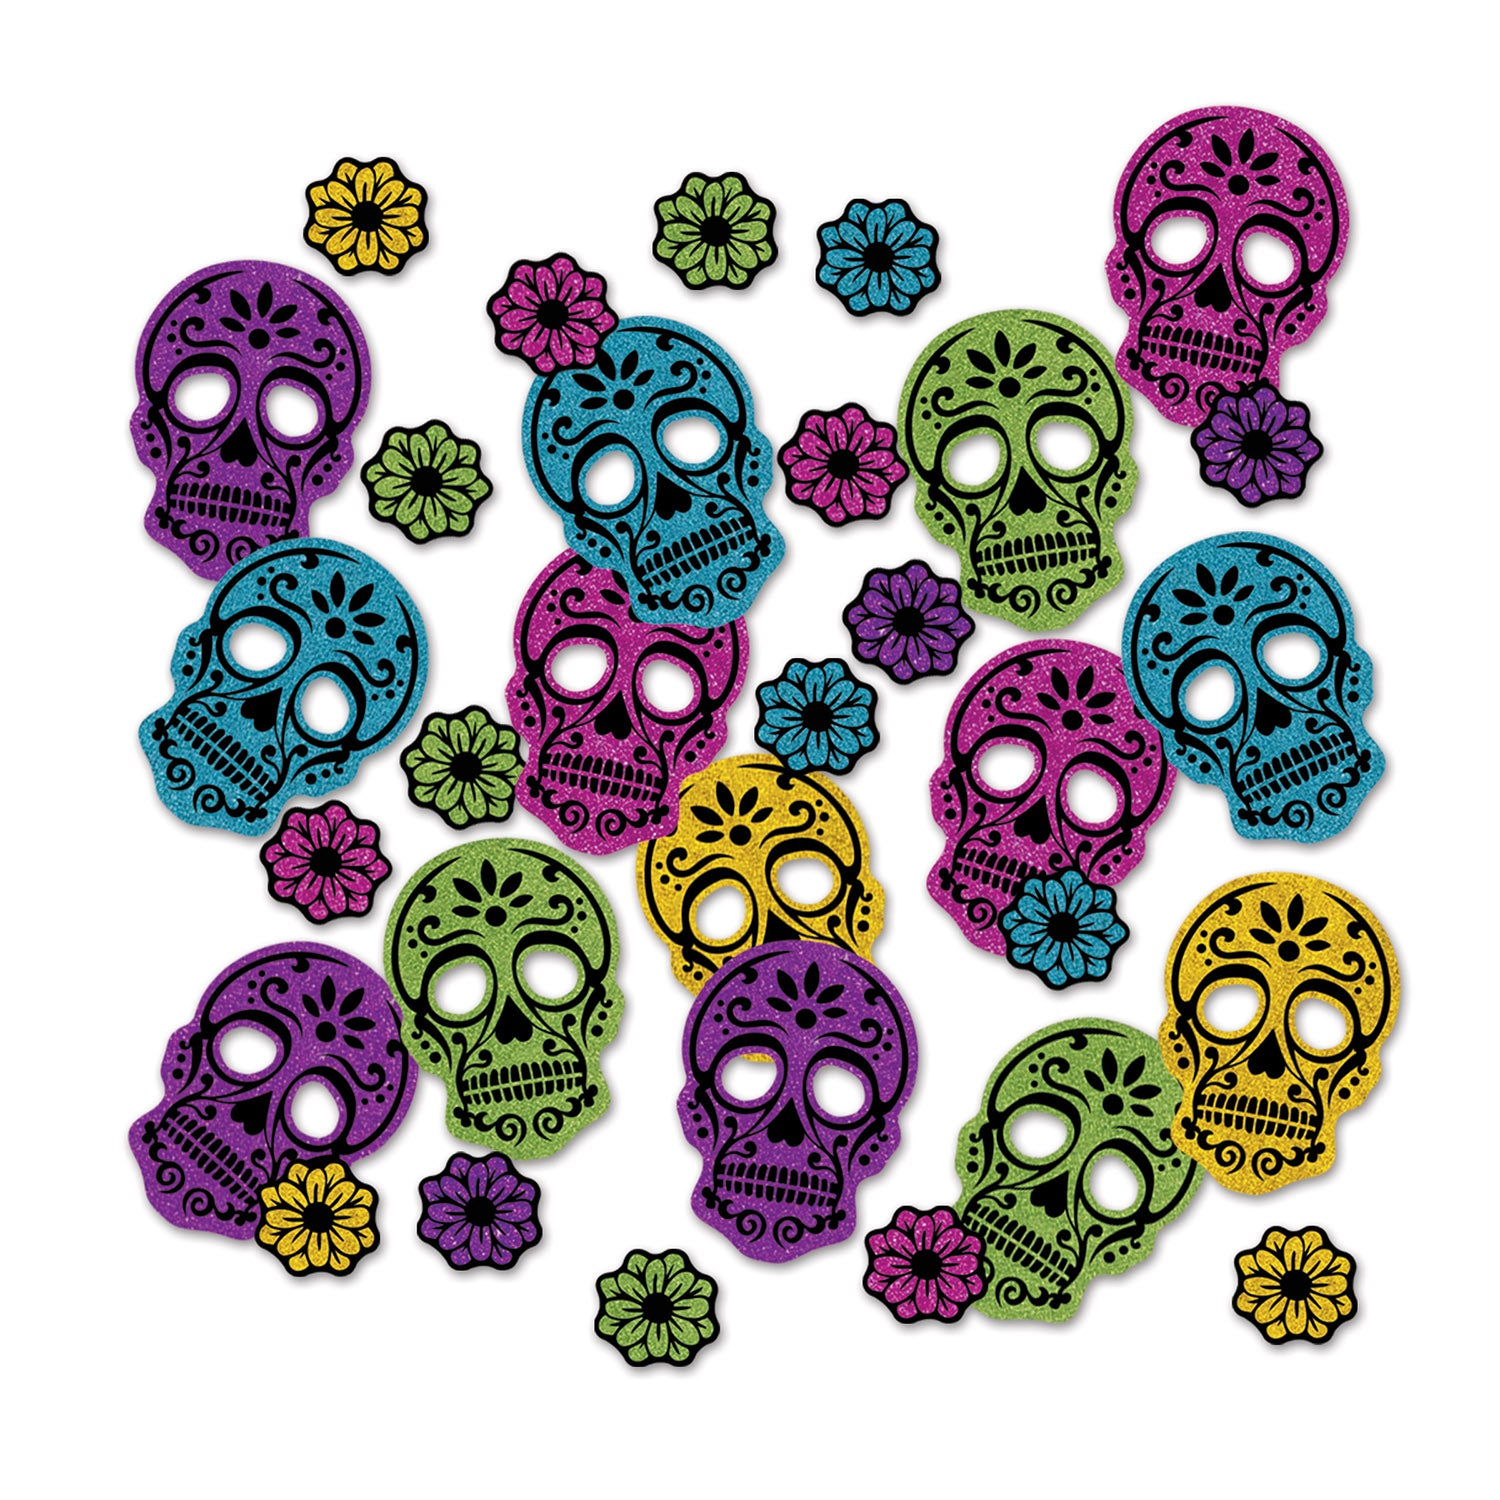 Day Of The Dead Deluxe Sparkle Confetti (.5 Oz/Pkg) by Beistle - Day of the Dead Theme Decorations